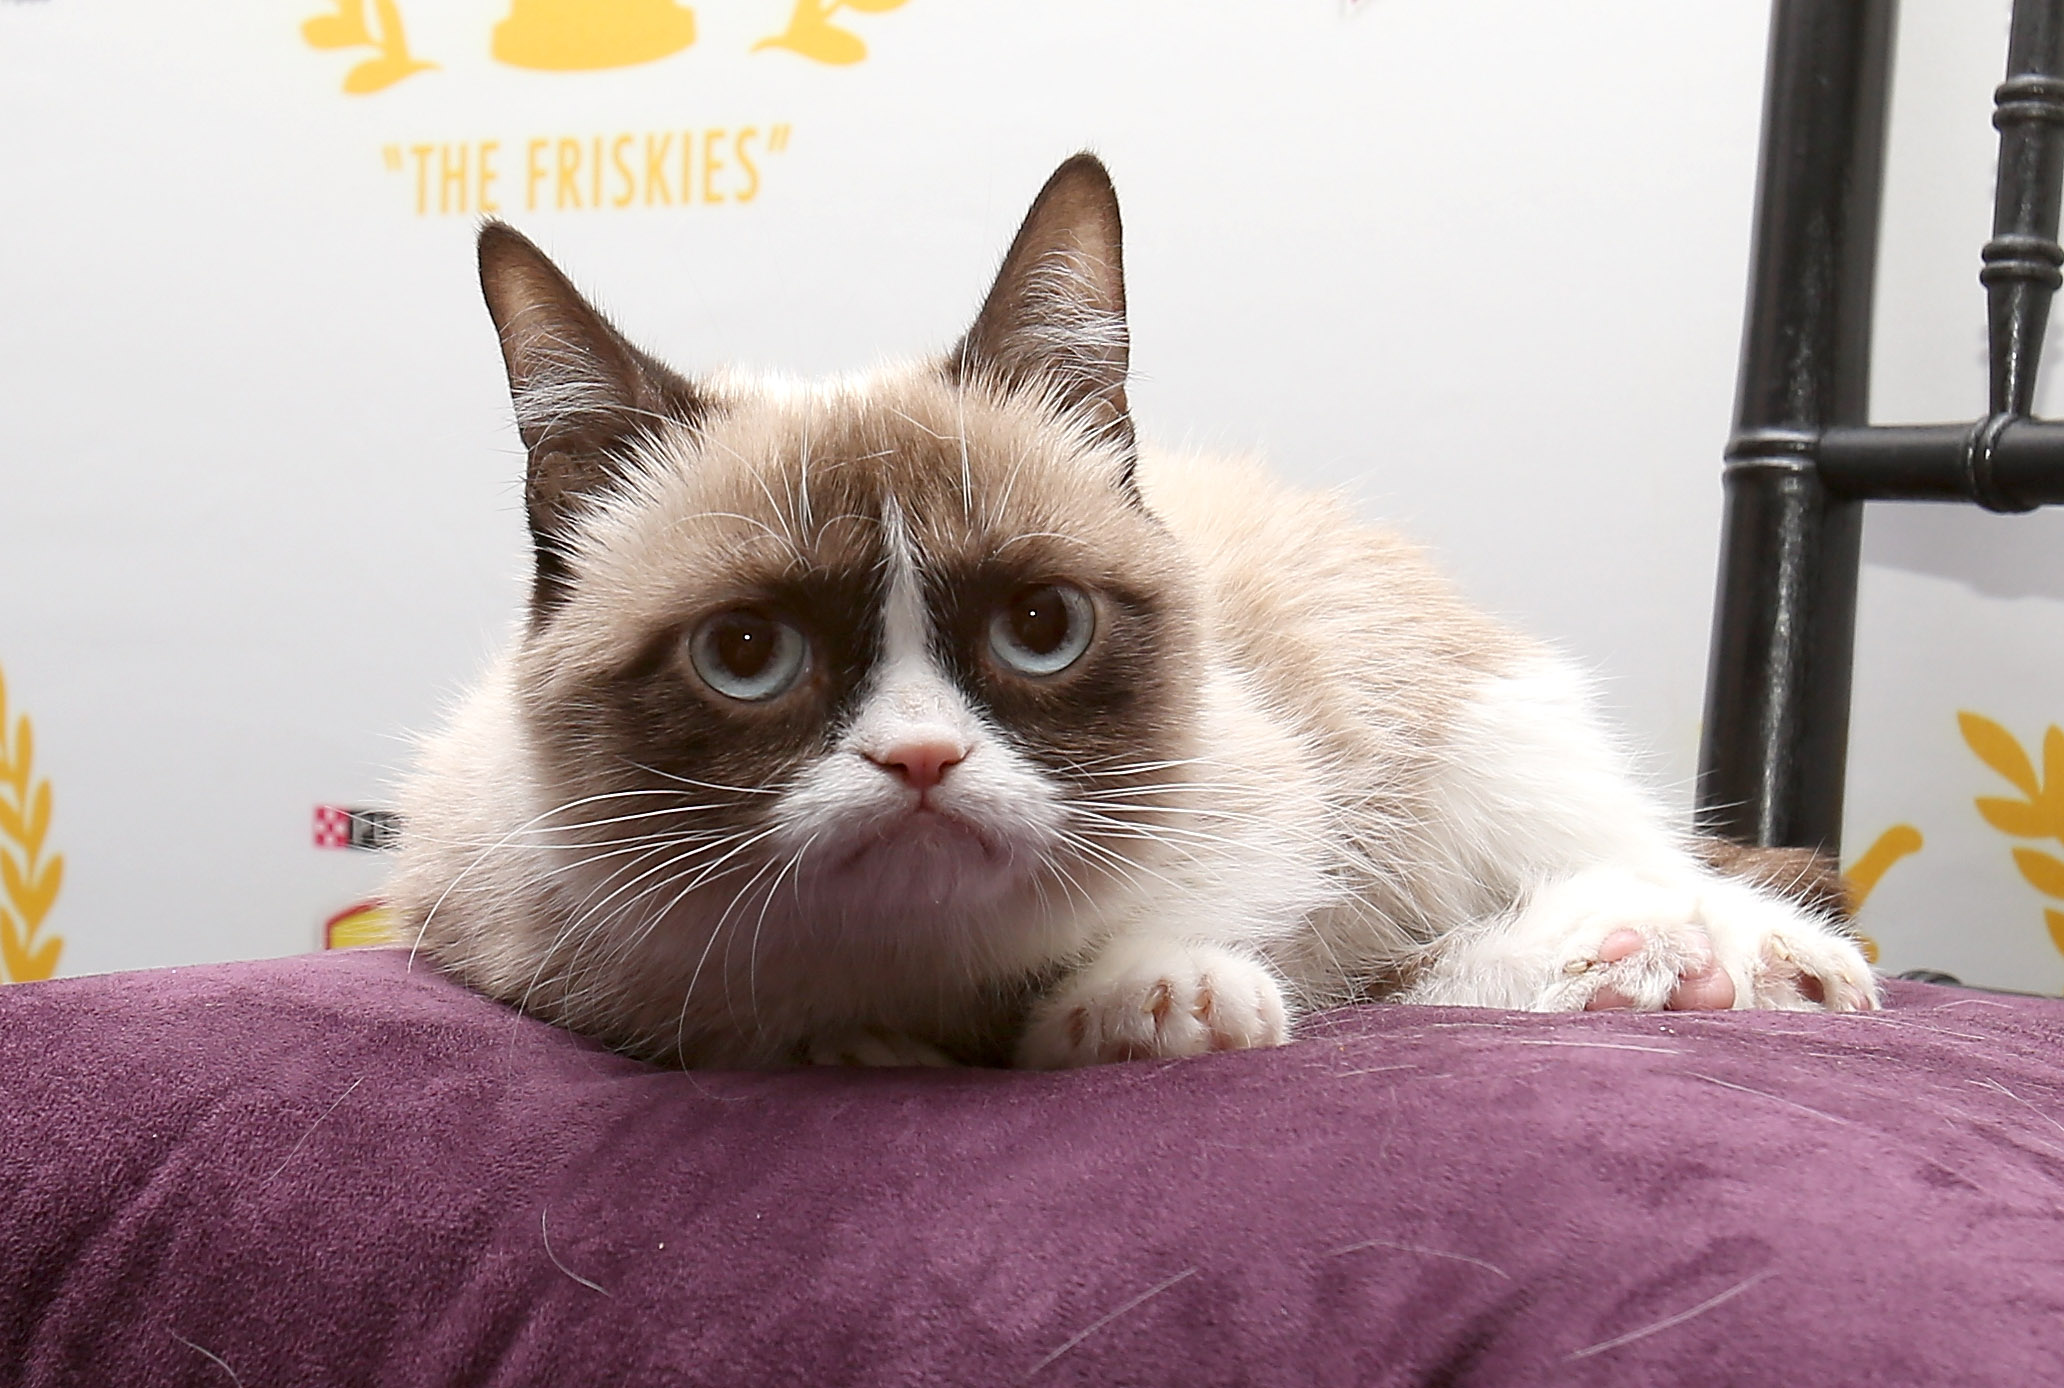 Grumpy Cat wallpaper ?? Download free stunning HD backgrounds for .